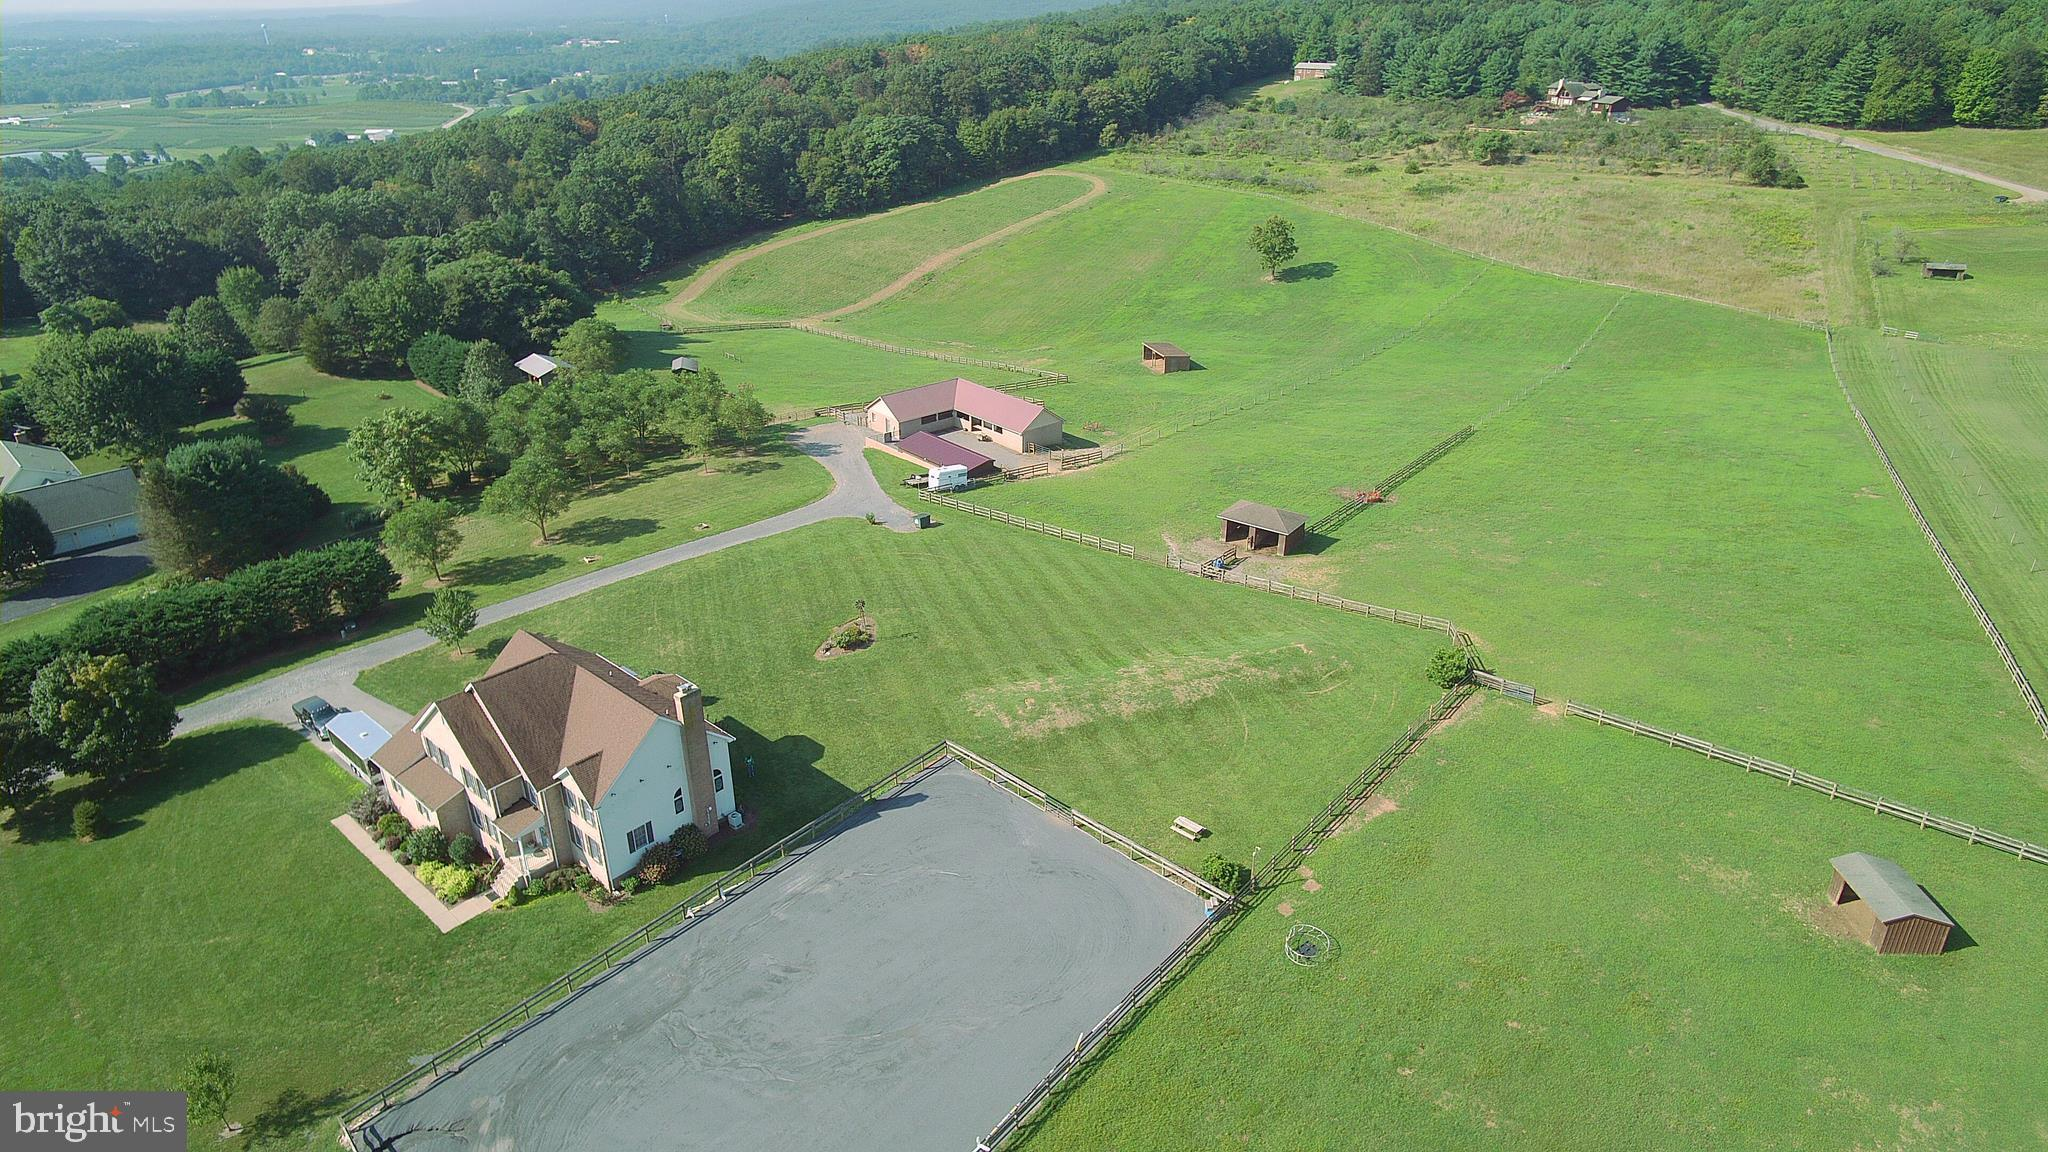 This property has it all! This rural gem is conveniently located between Frederick and Gettysburg. H